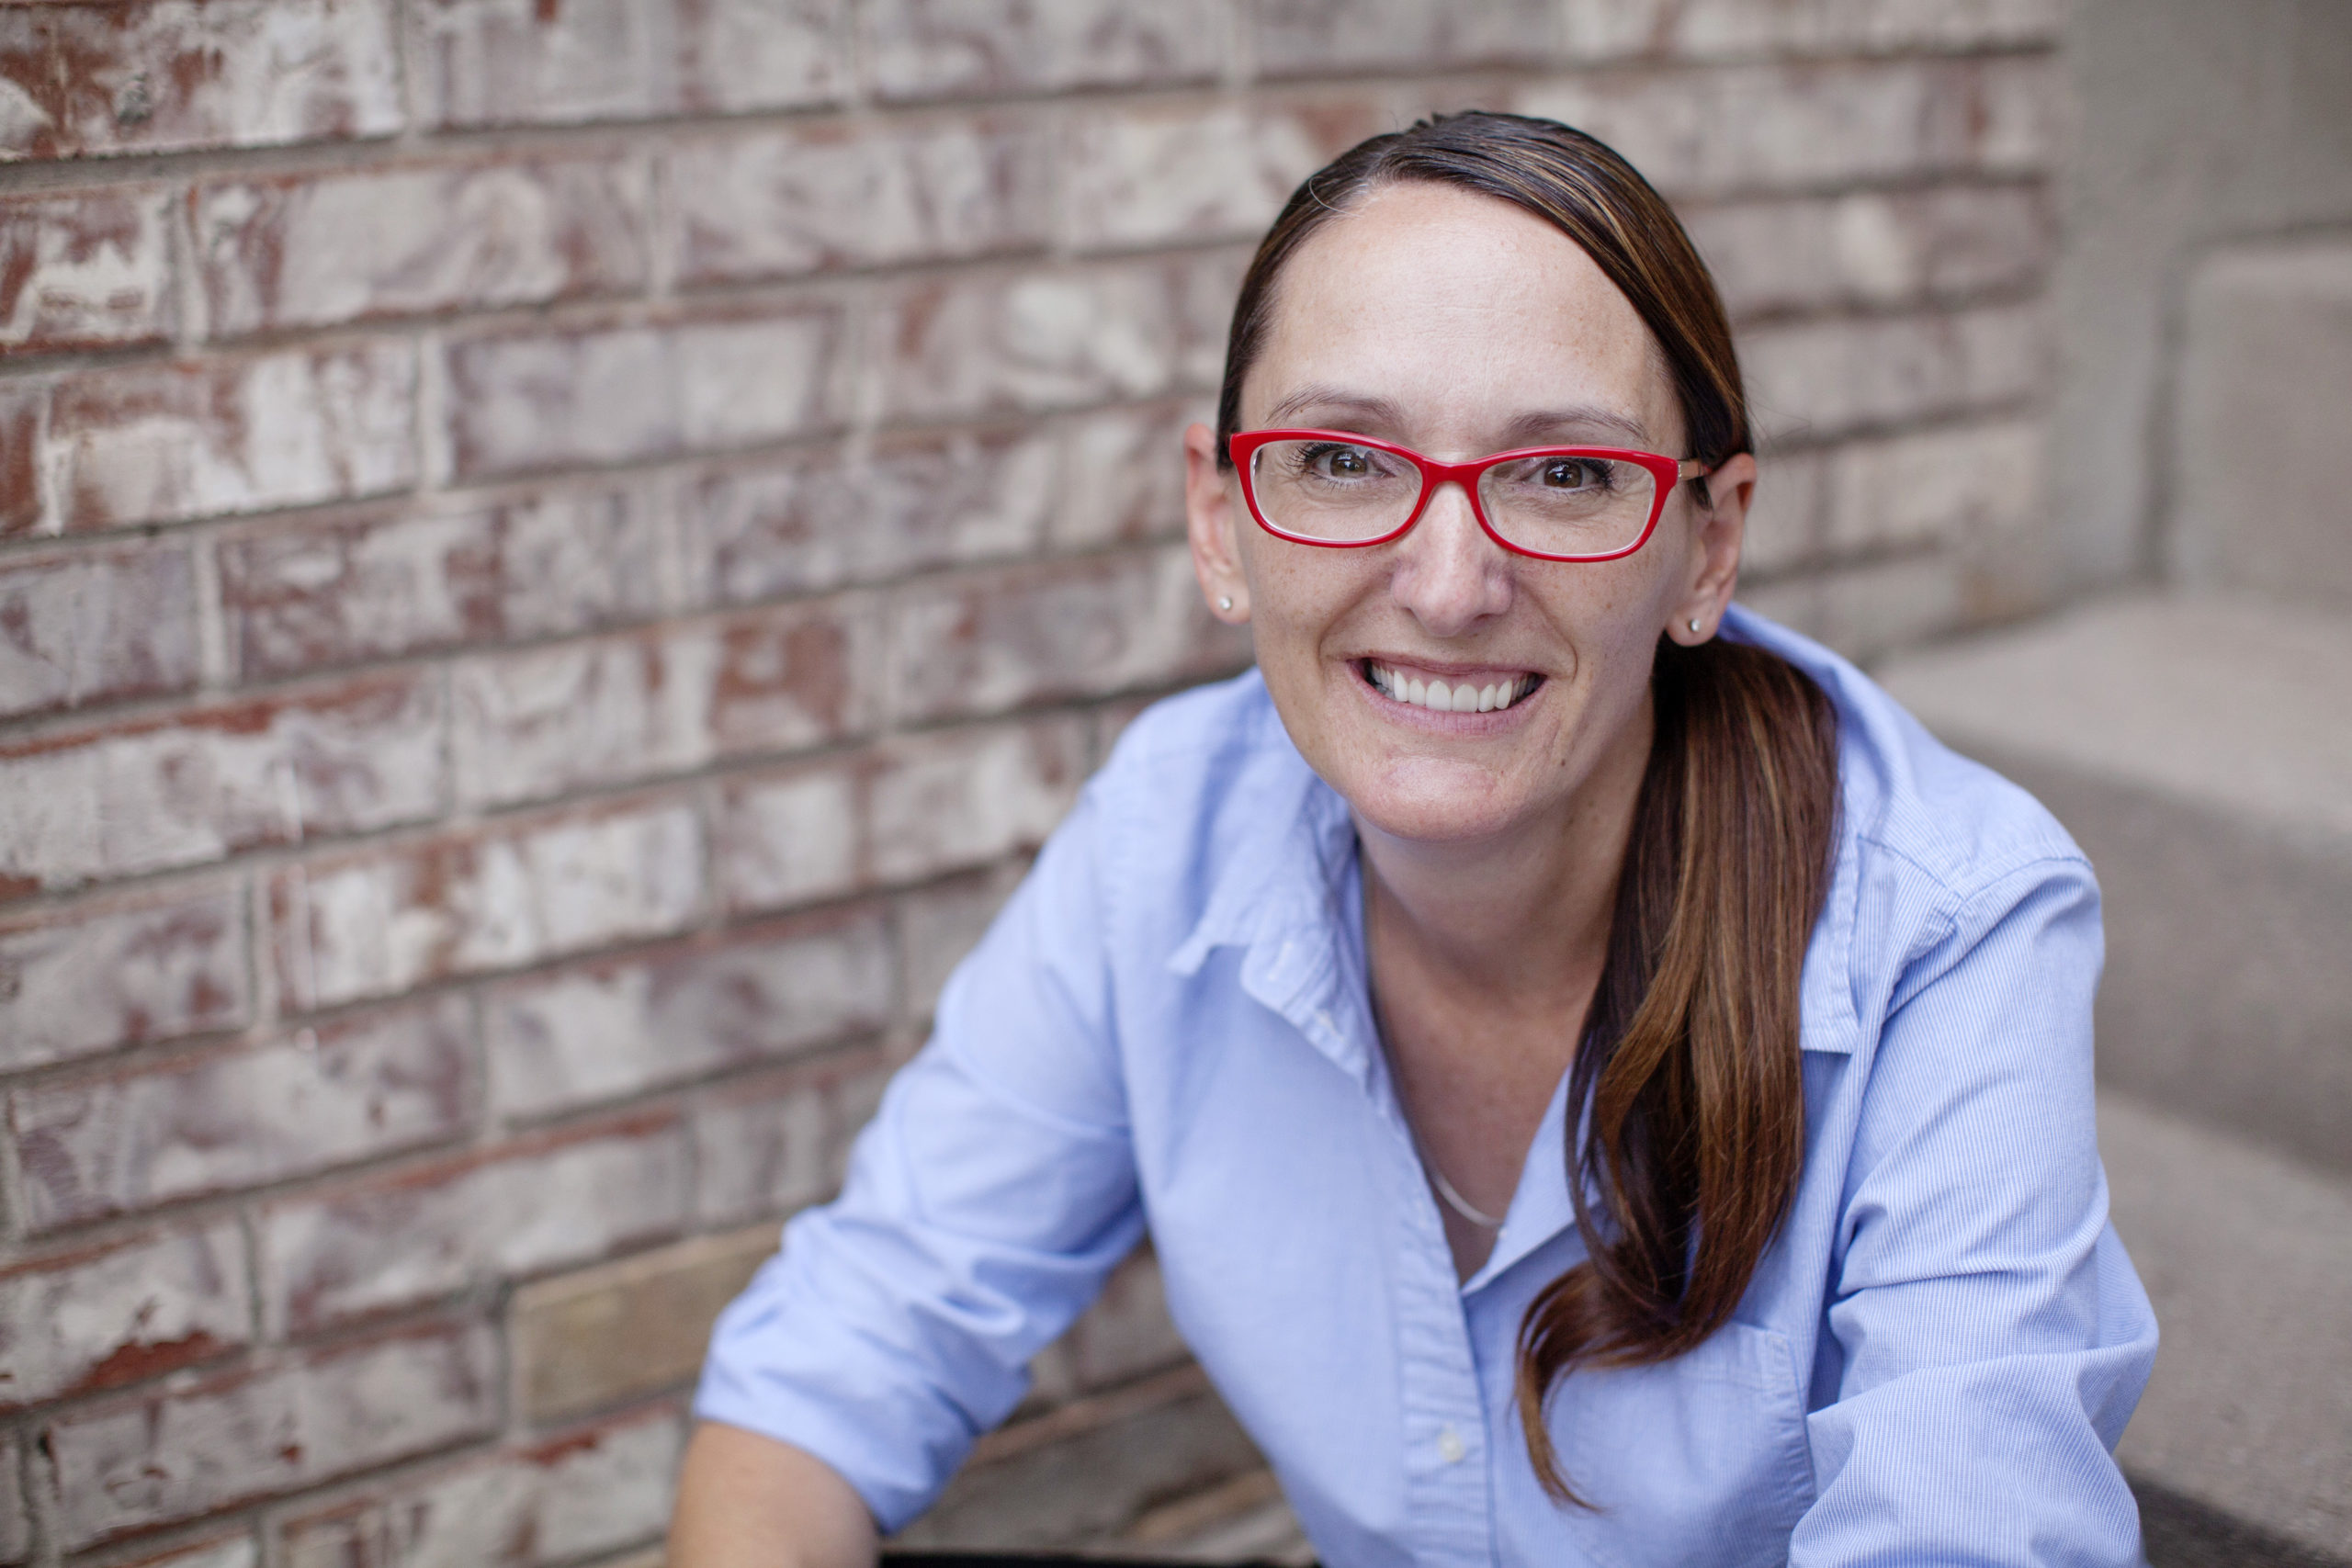 Jessi Smith is smiling wide, wearing bright red glasses and a blue button-down shirt. There's a brick wall behind her.